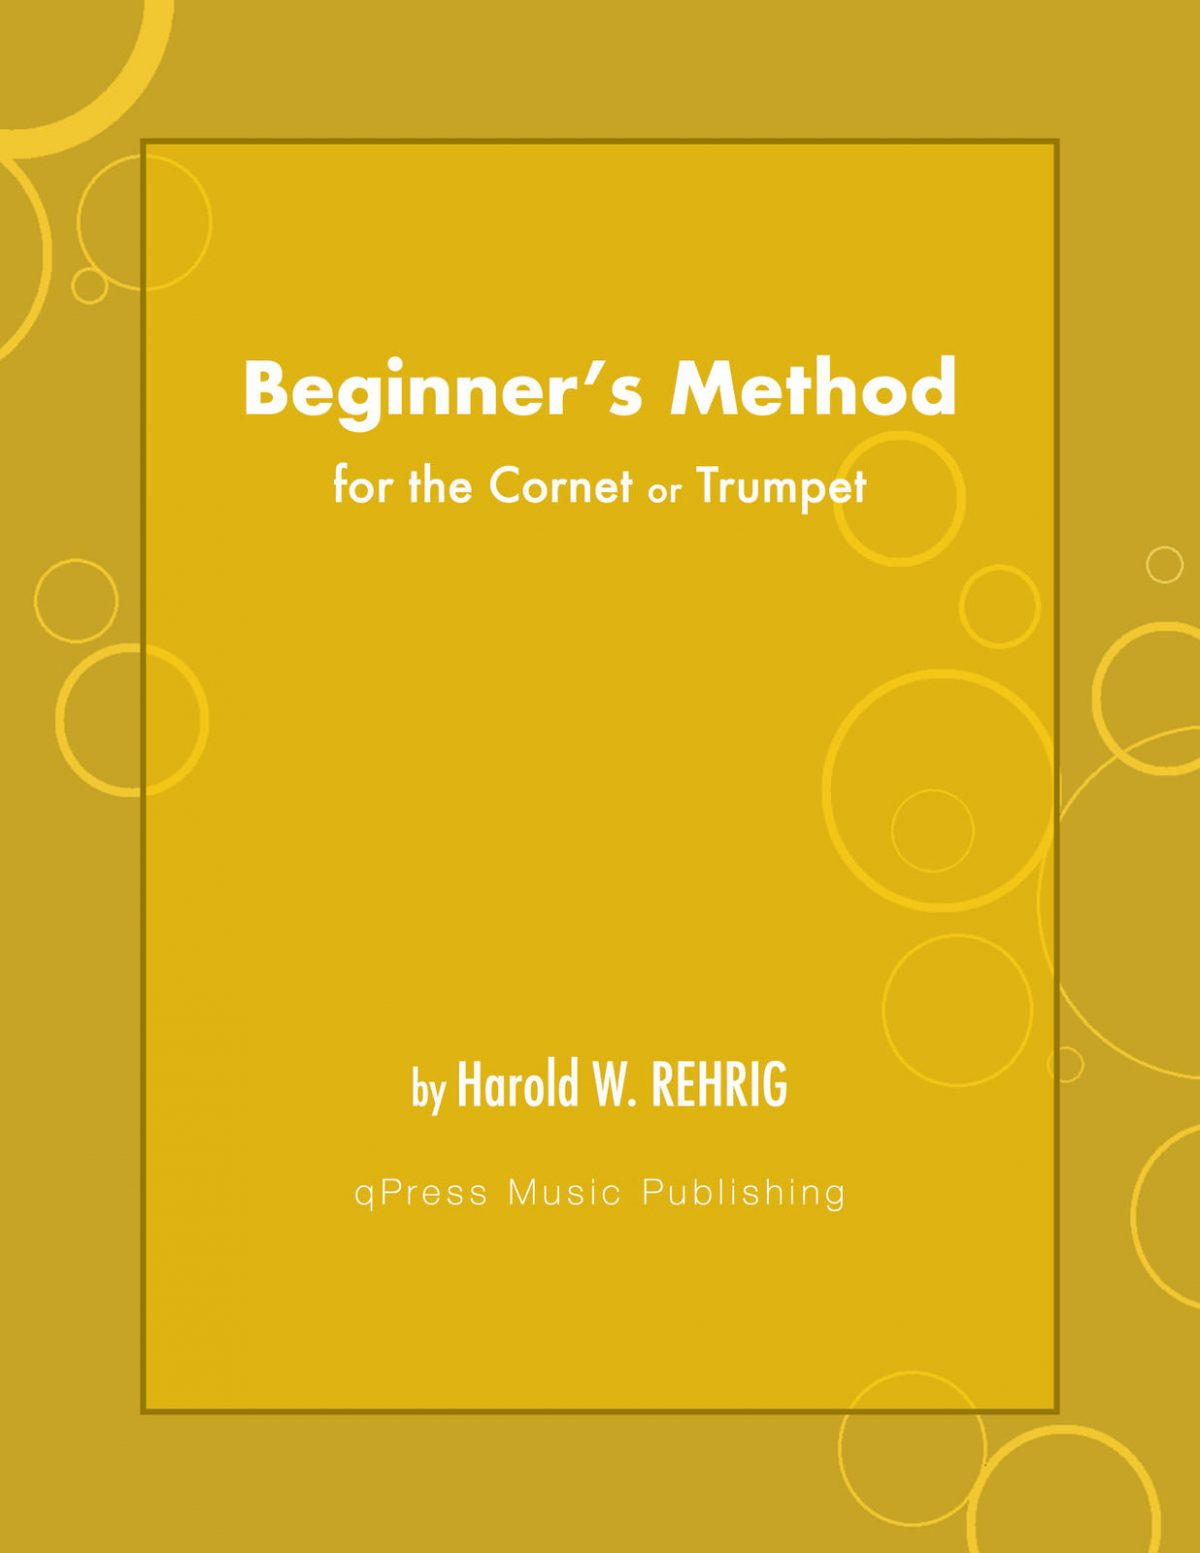 Rehrig, Harold, Beginner's Method for the Cornet or Trumpet